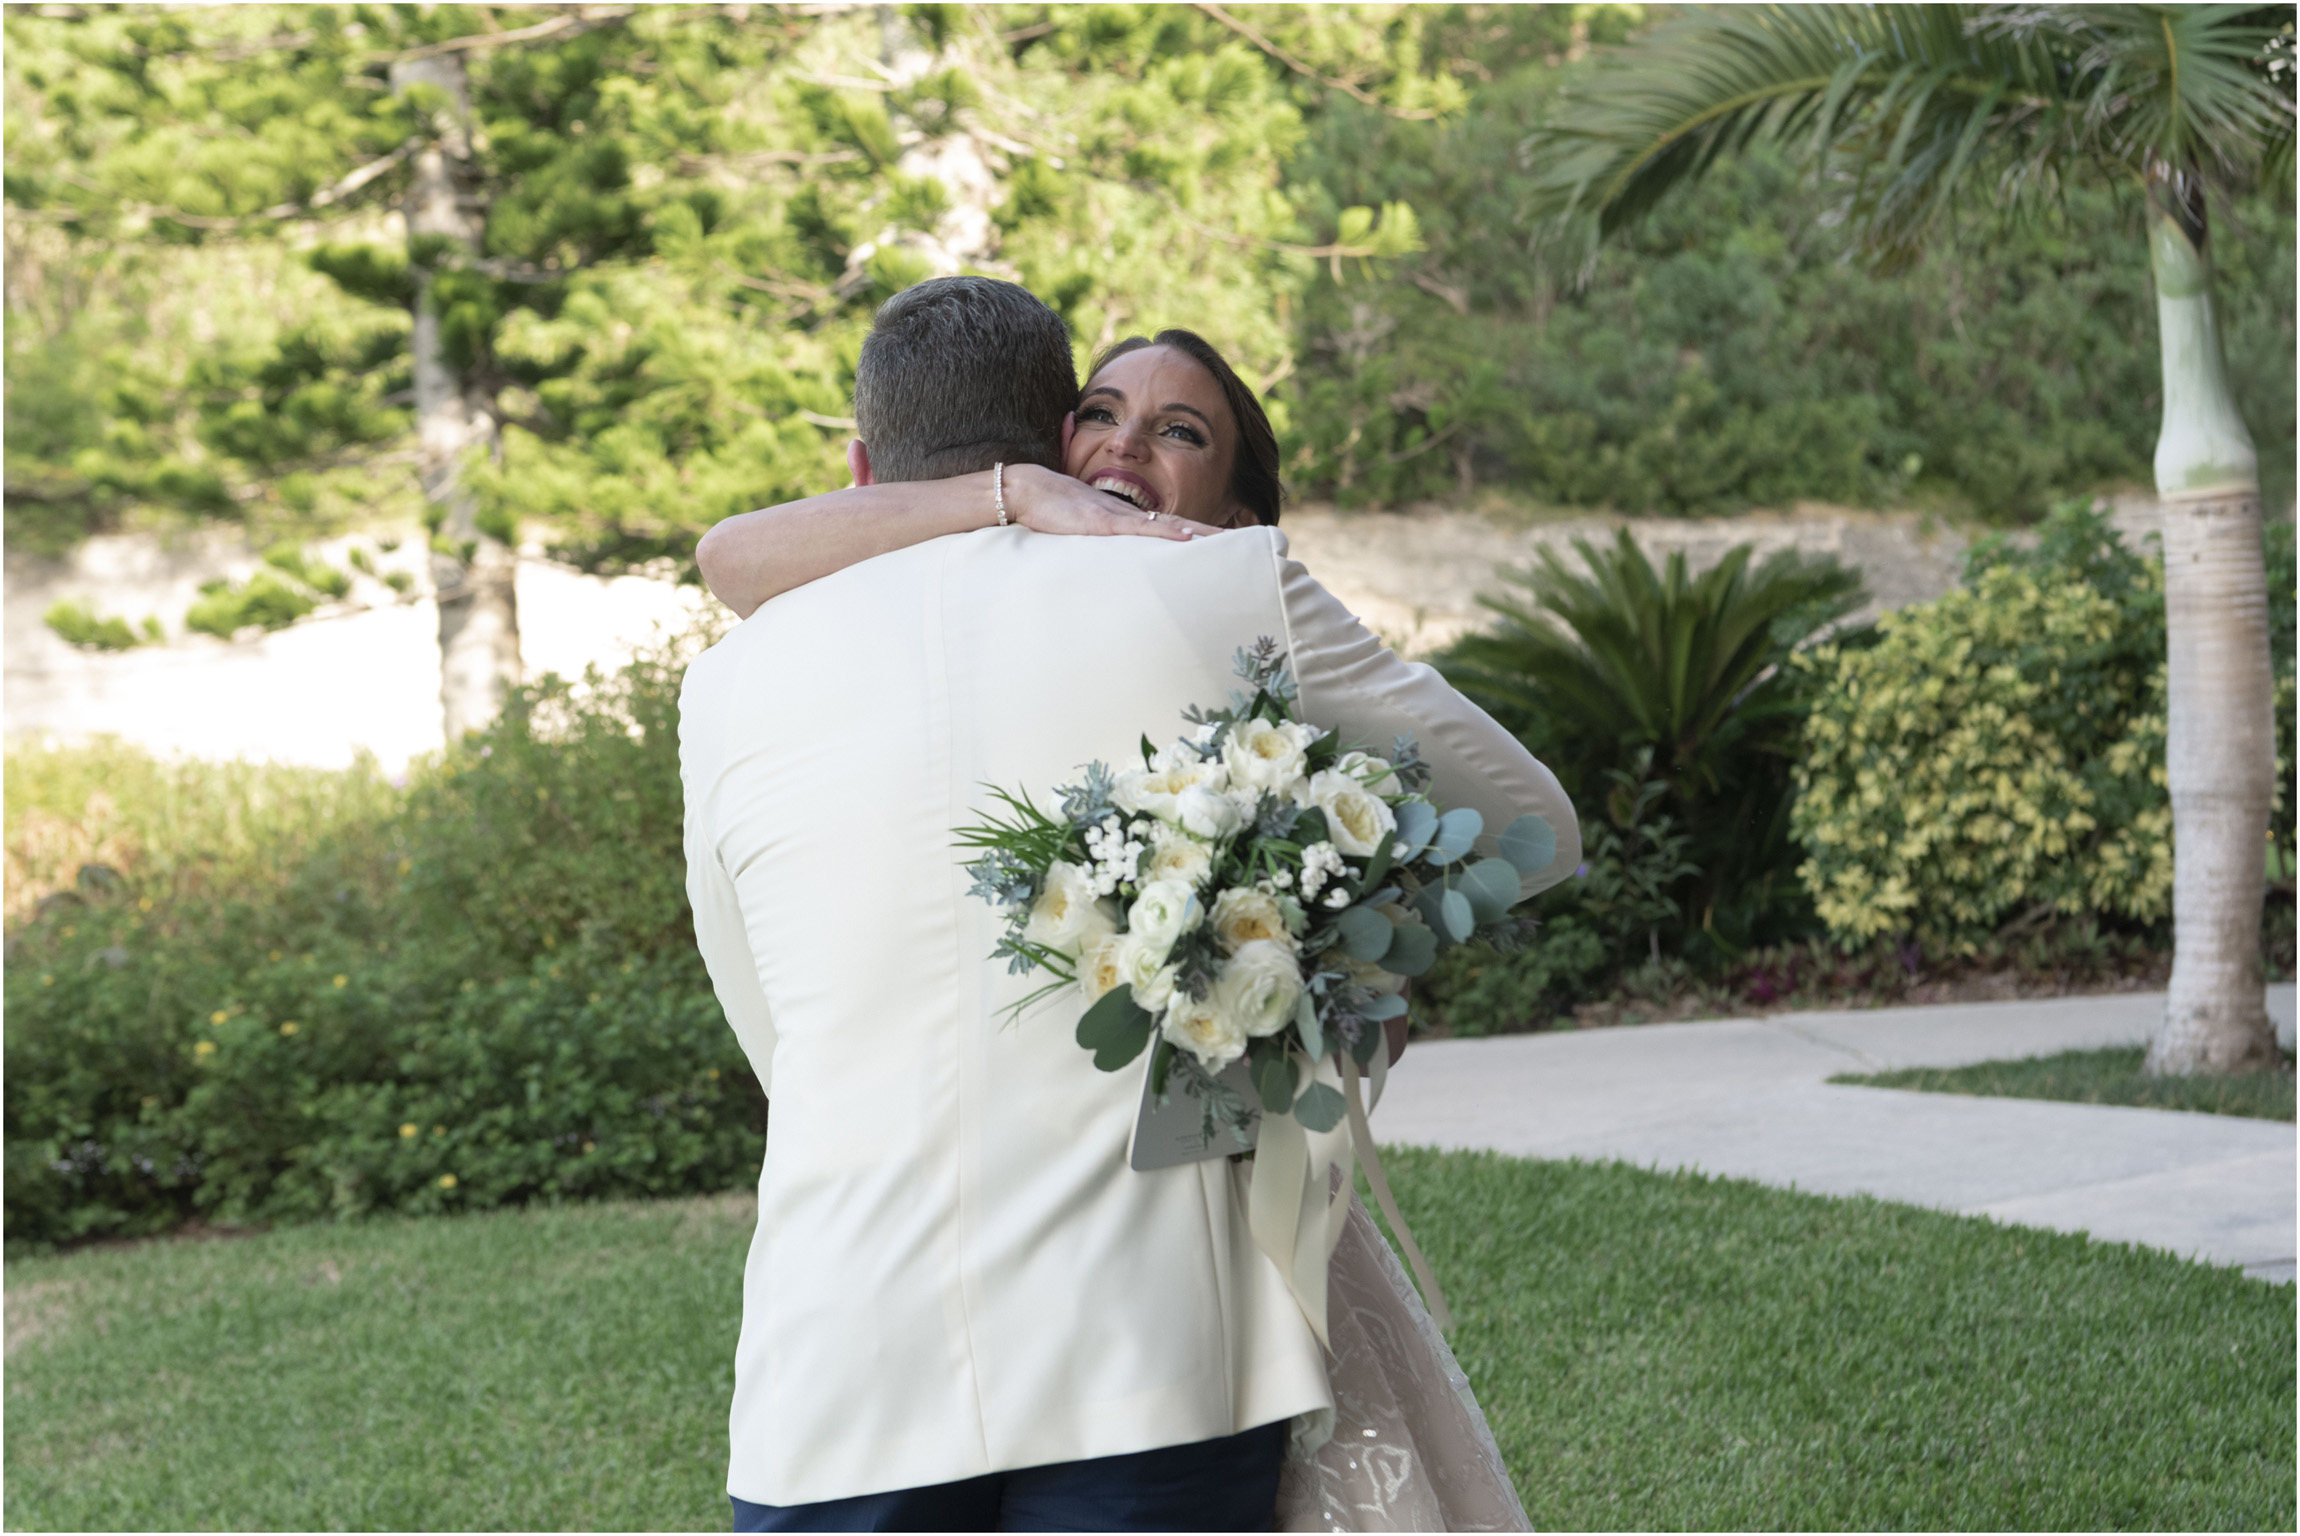 ©Fiander+Foto_Bermuda+Wedding+Photographer_The+Reefs_Taylor_Tedd_058.jpg